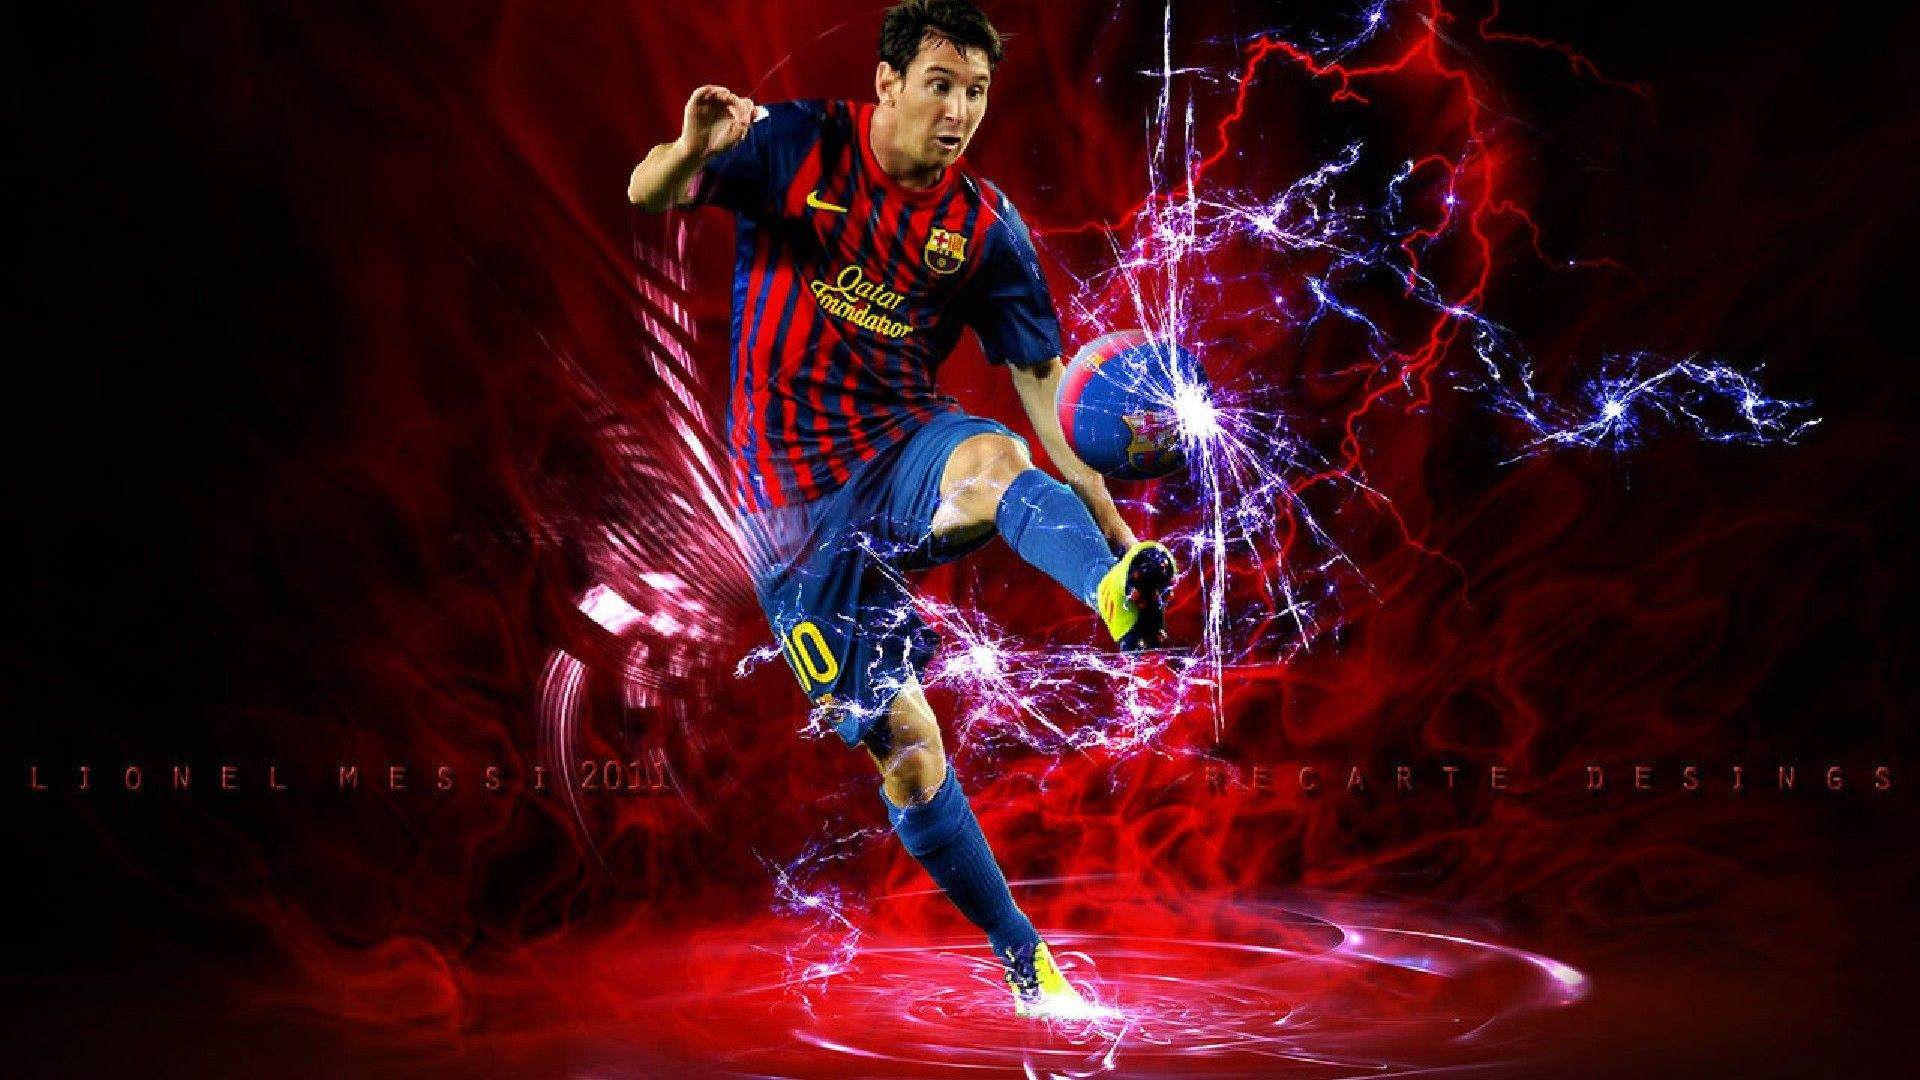 Lionel Messi Wallpaper 13 Hd Background 9 HD Wallpapers amagico 1920x1080